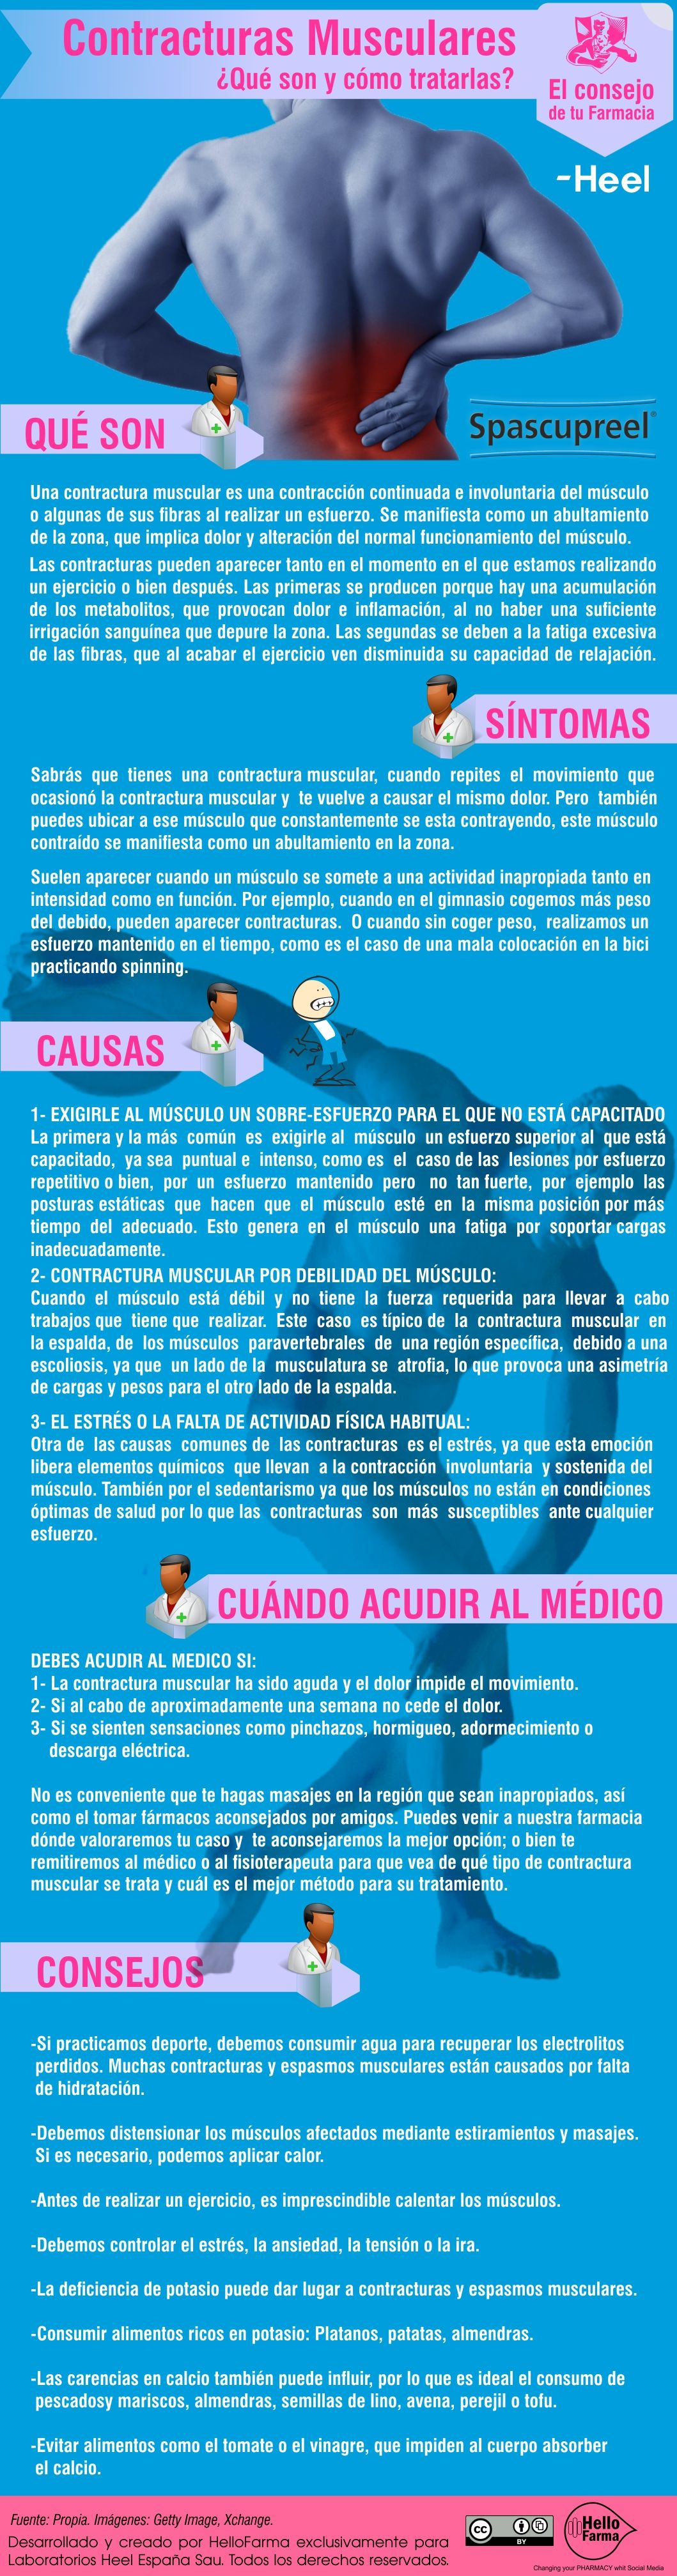 Uno De Los Problemas De La Vuelta Al Ejercicio Y Ponernos En Forma Para El Verano Son Las Contra Healthcare Infographics Health And Safety Health And Wellness